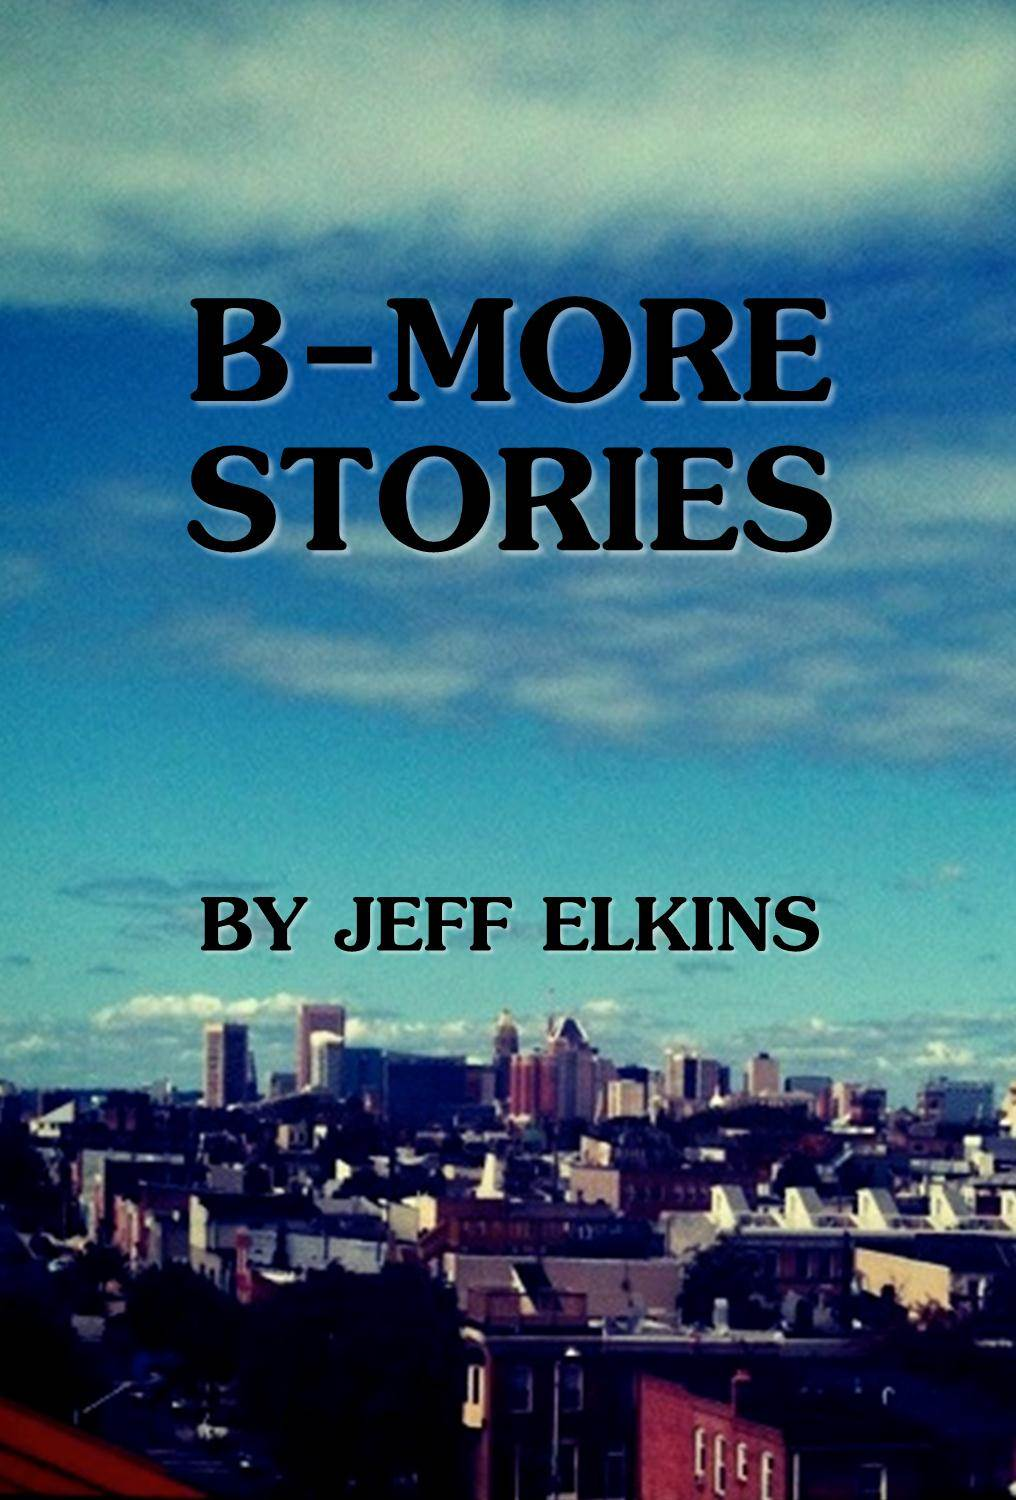 B-More Stories by The Bishop